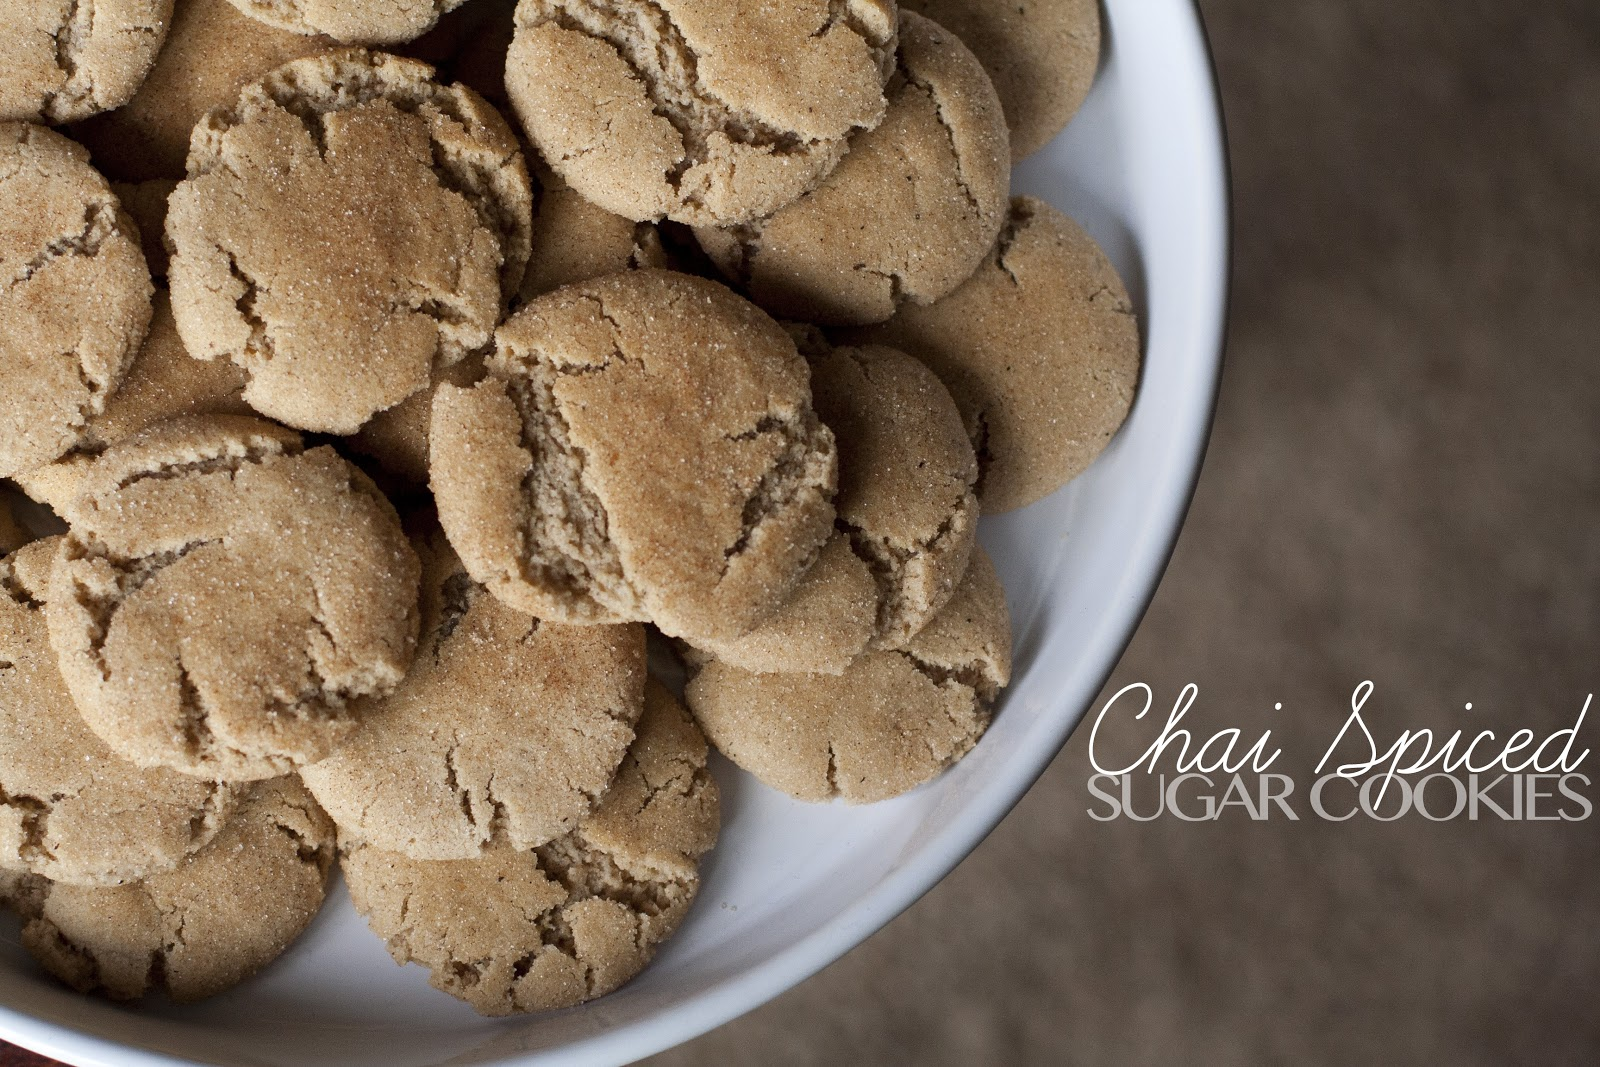 The Ney Life: IN OUR KITCHEN | Chai Spiced Sugar Cookies